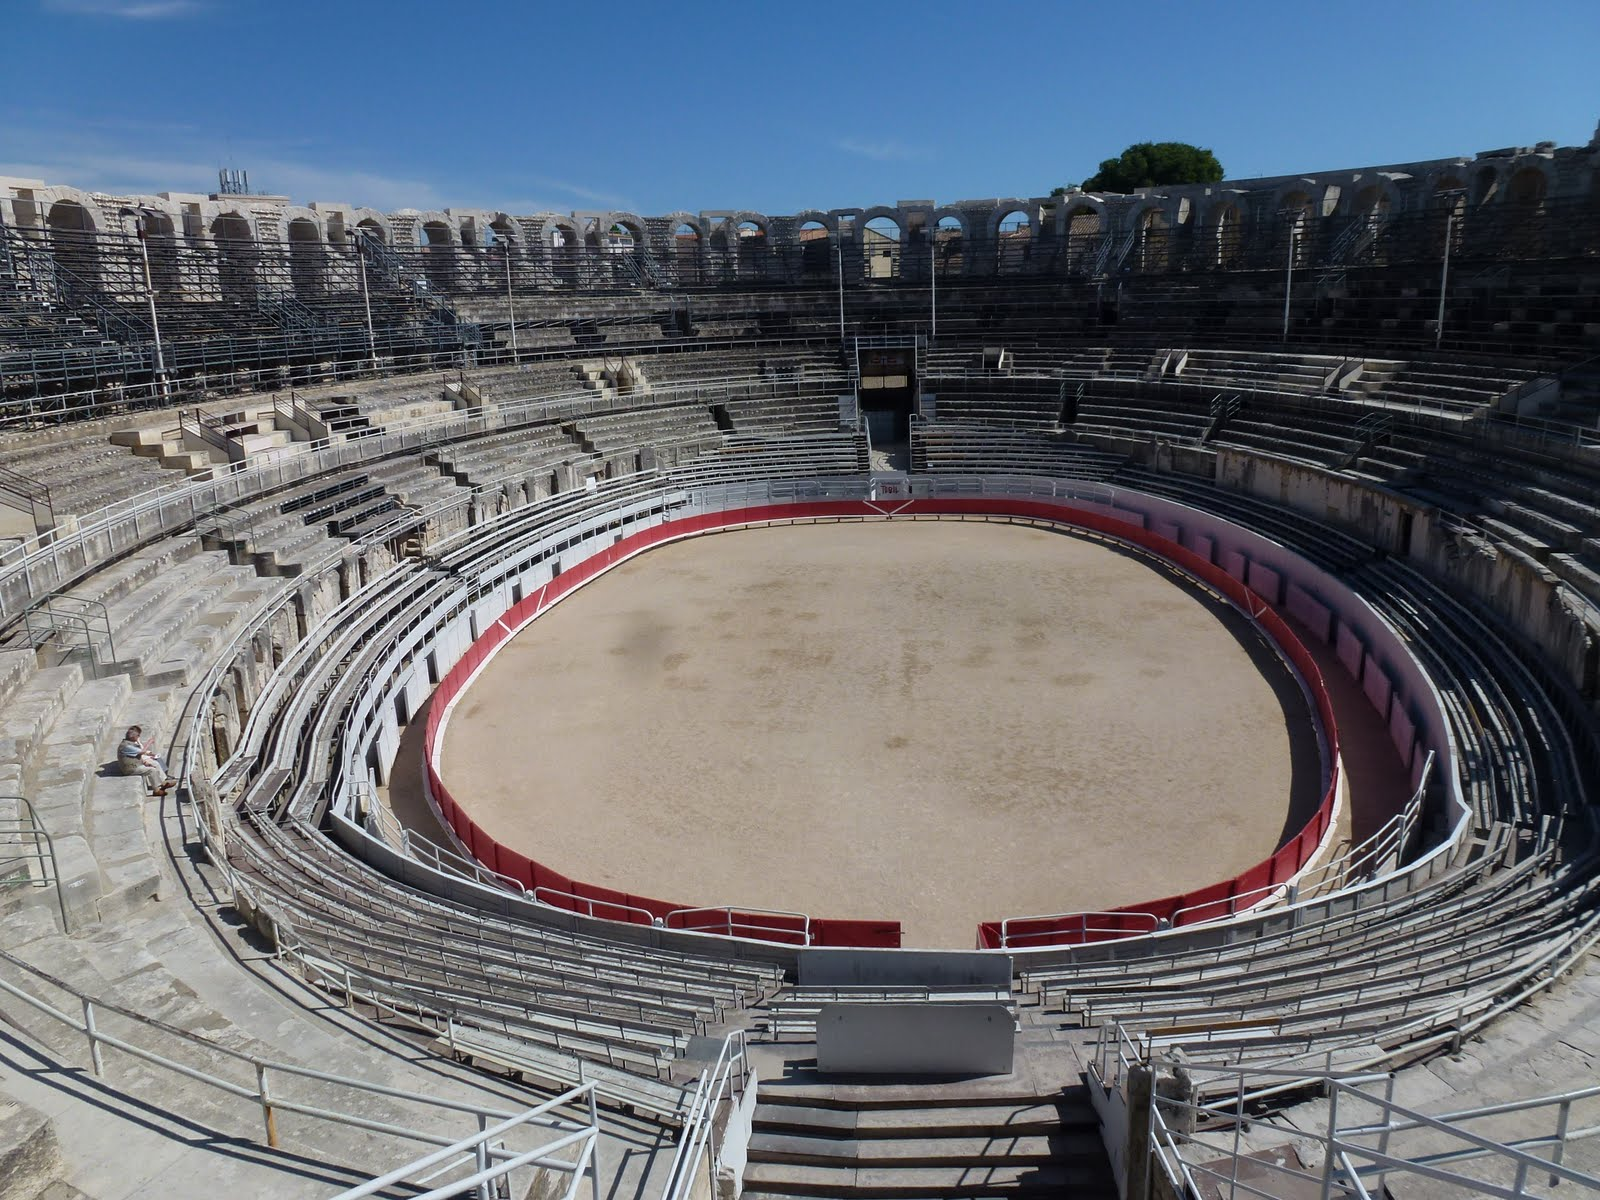 Armchair Travel With Martha: Roman Amphitheatre in Arles